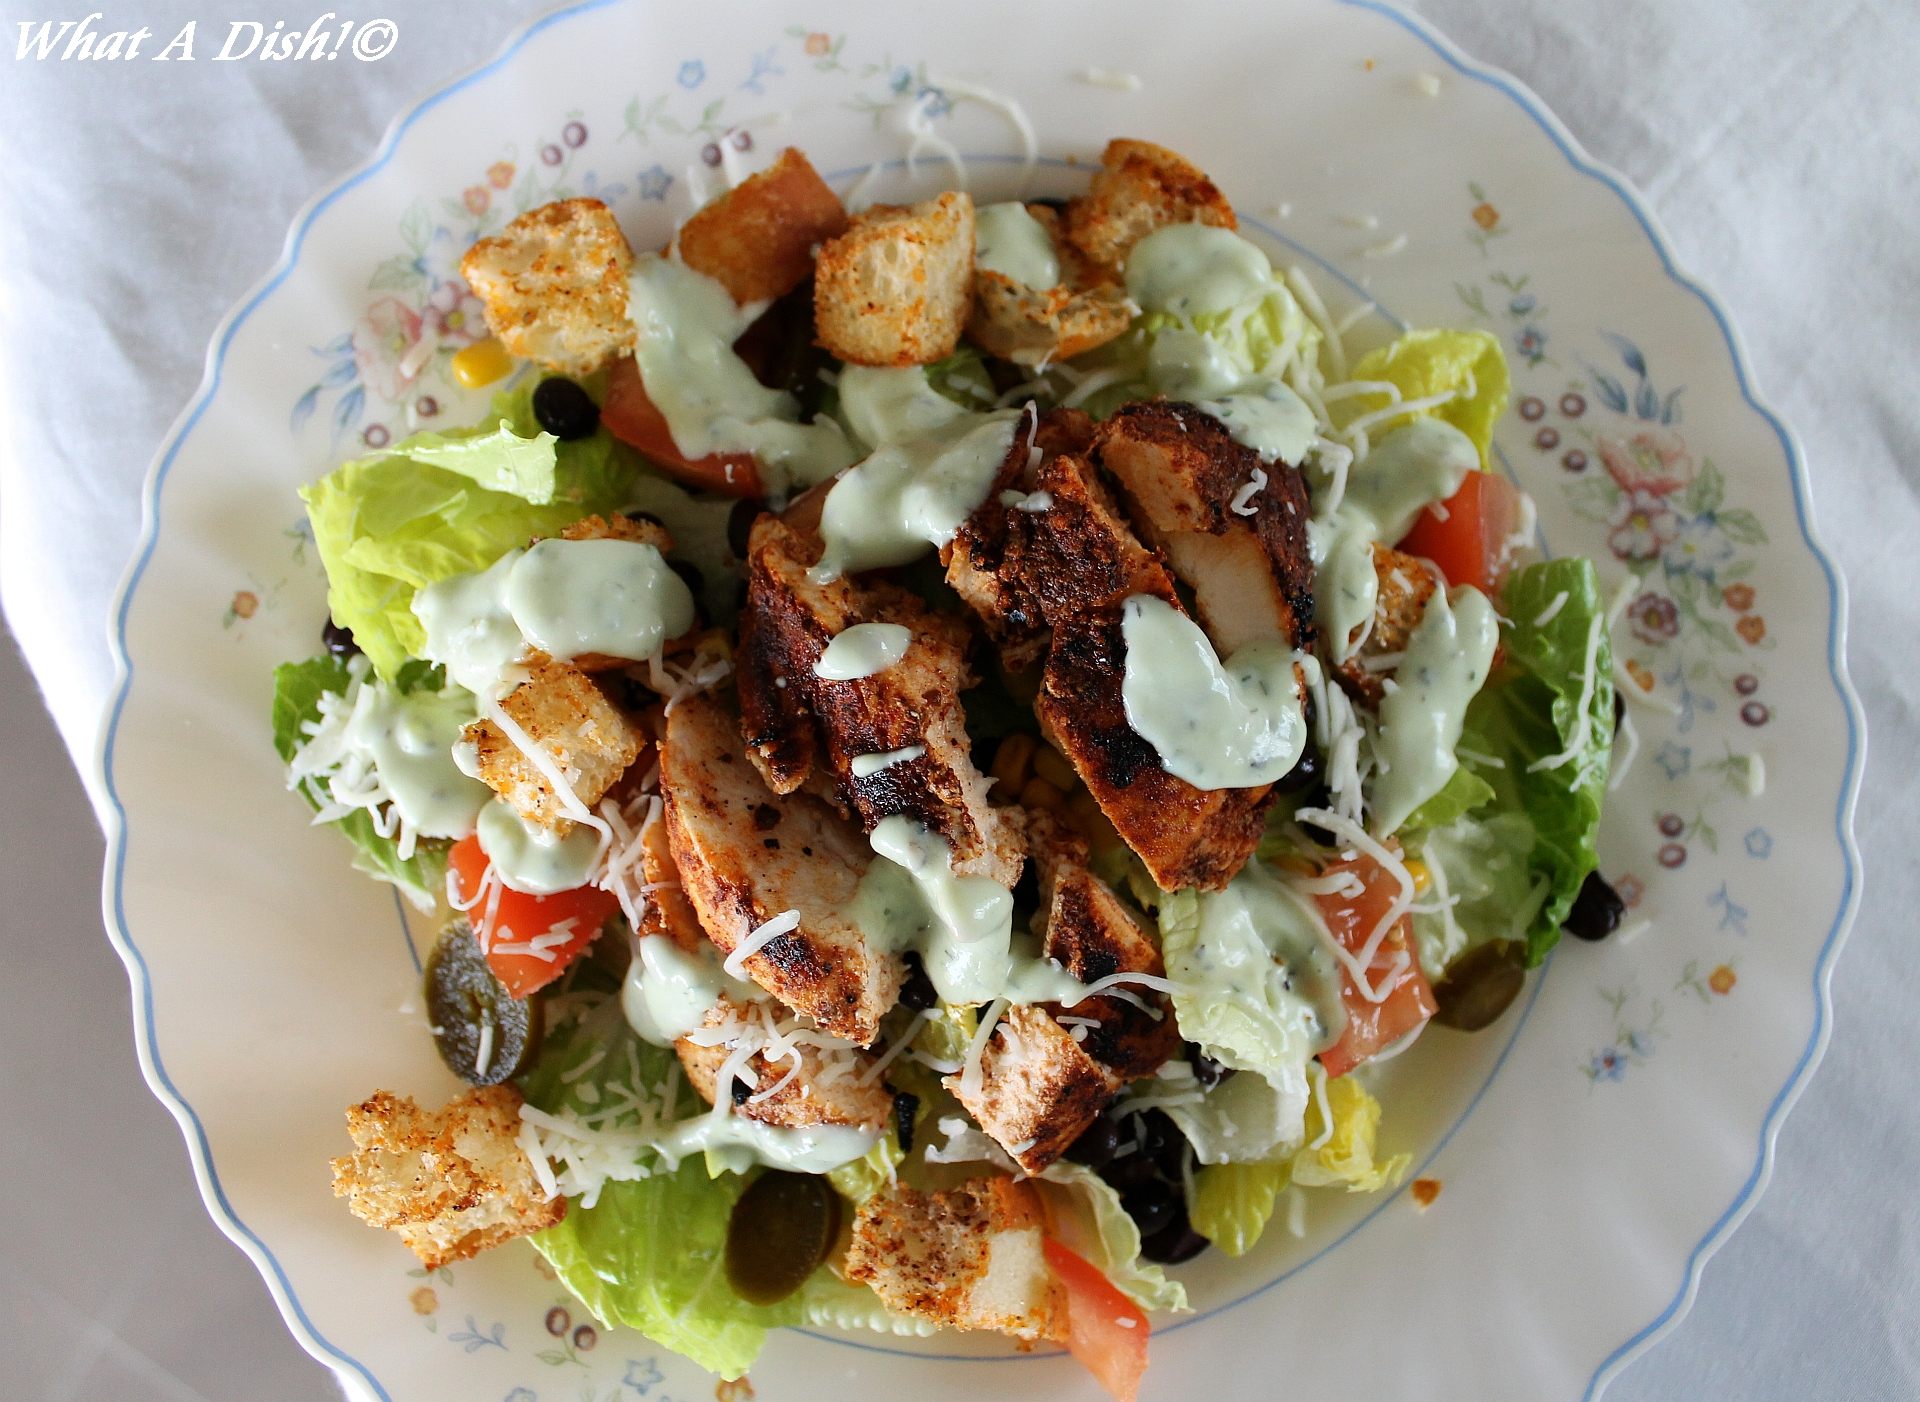 What A Dish!: Southwest Chicken Salad with Avocado Dressing